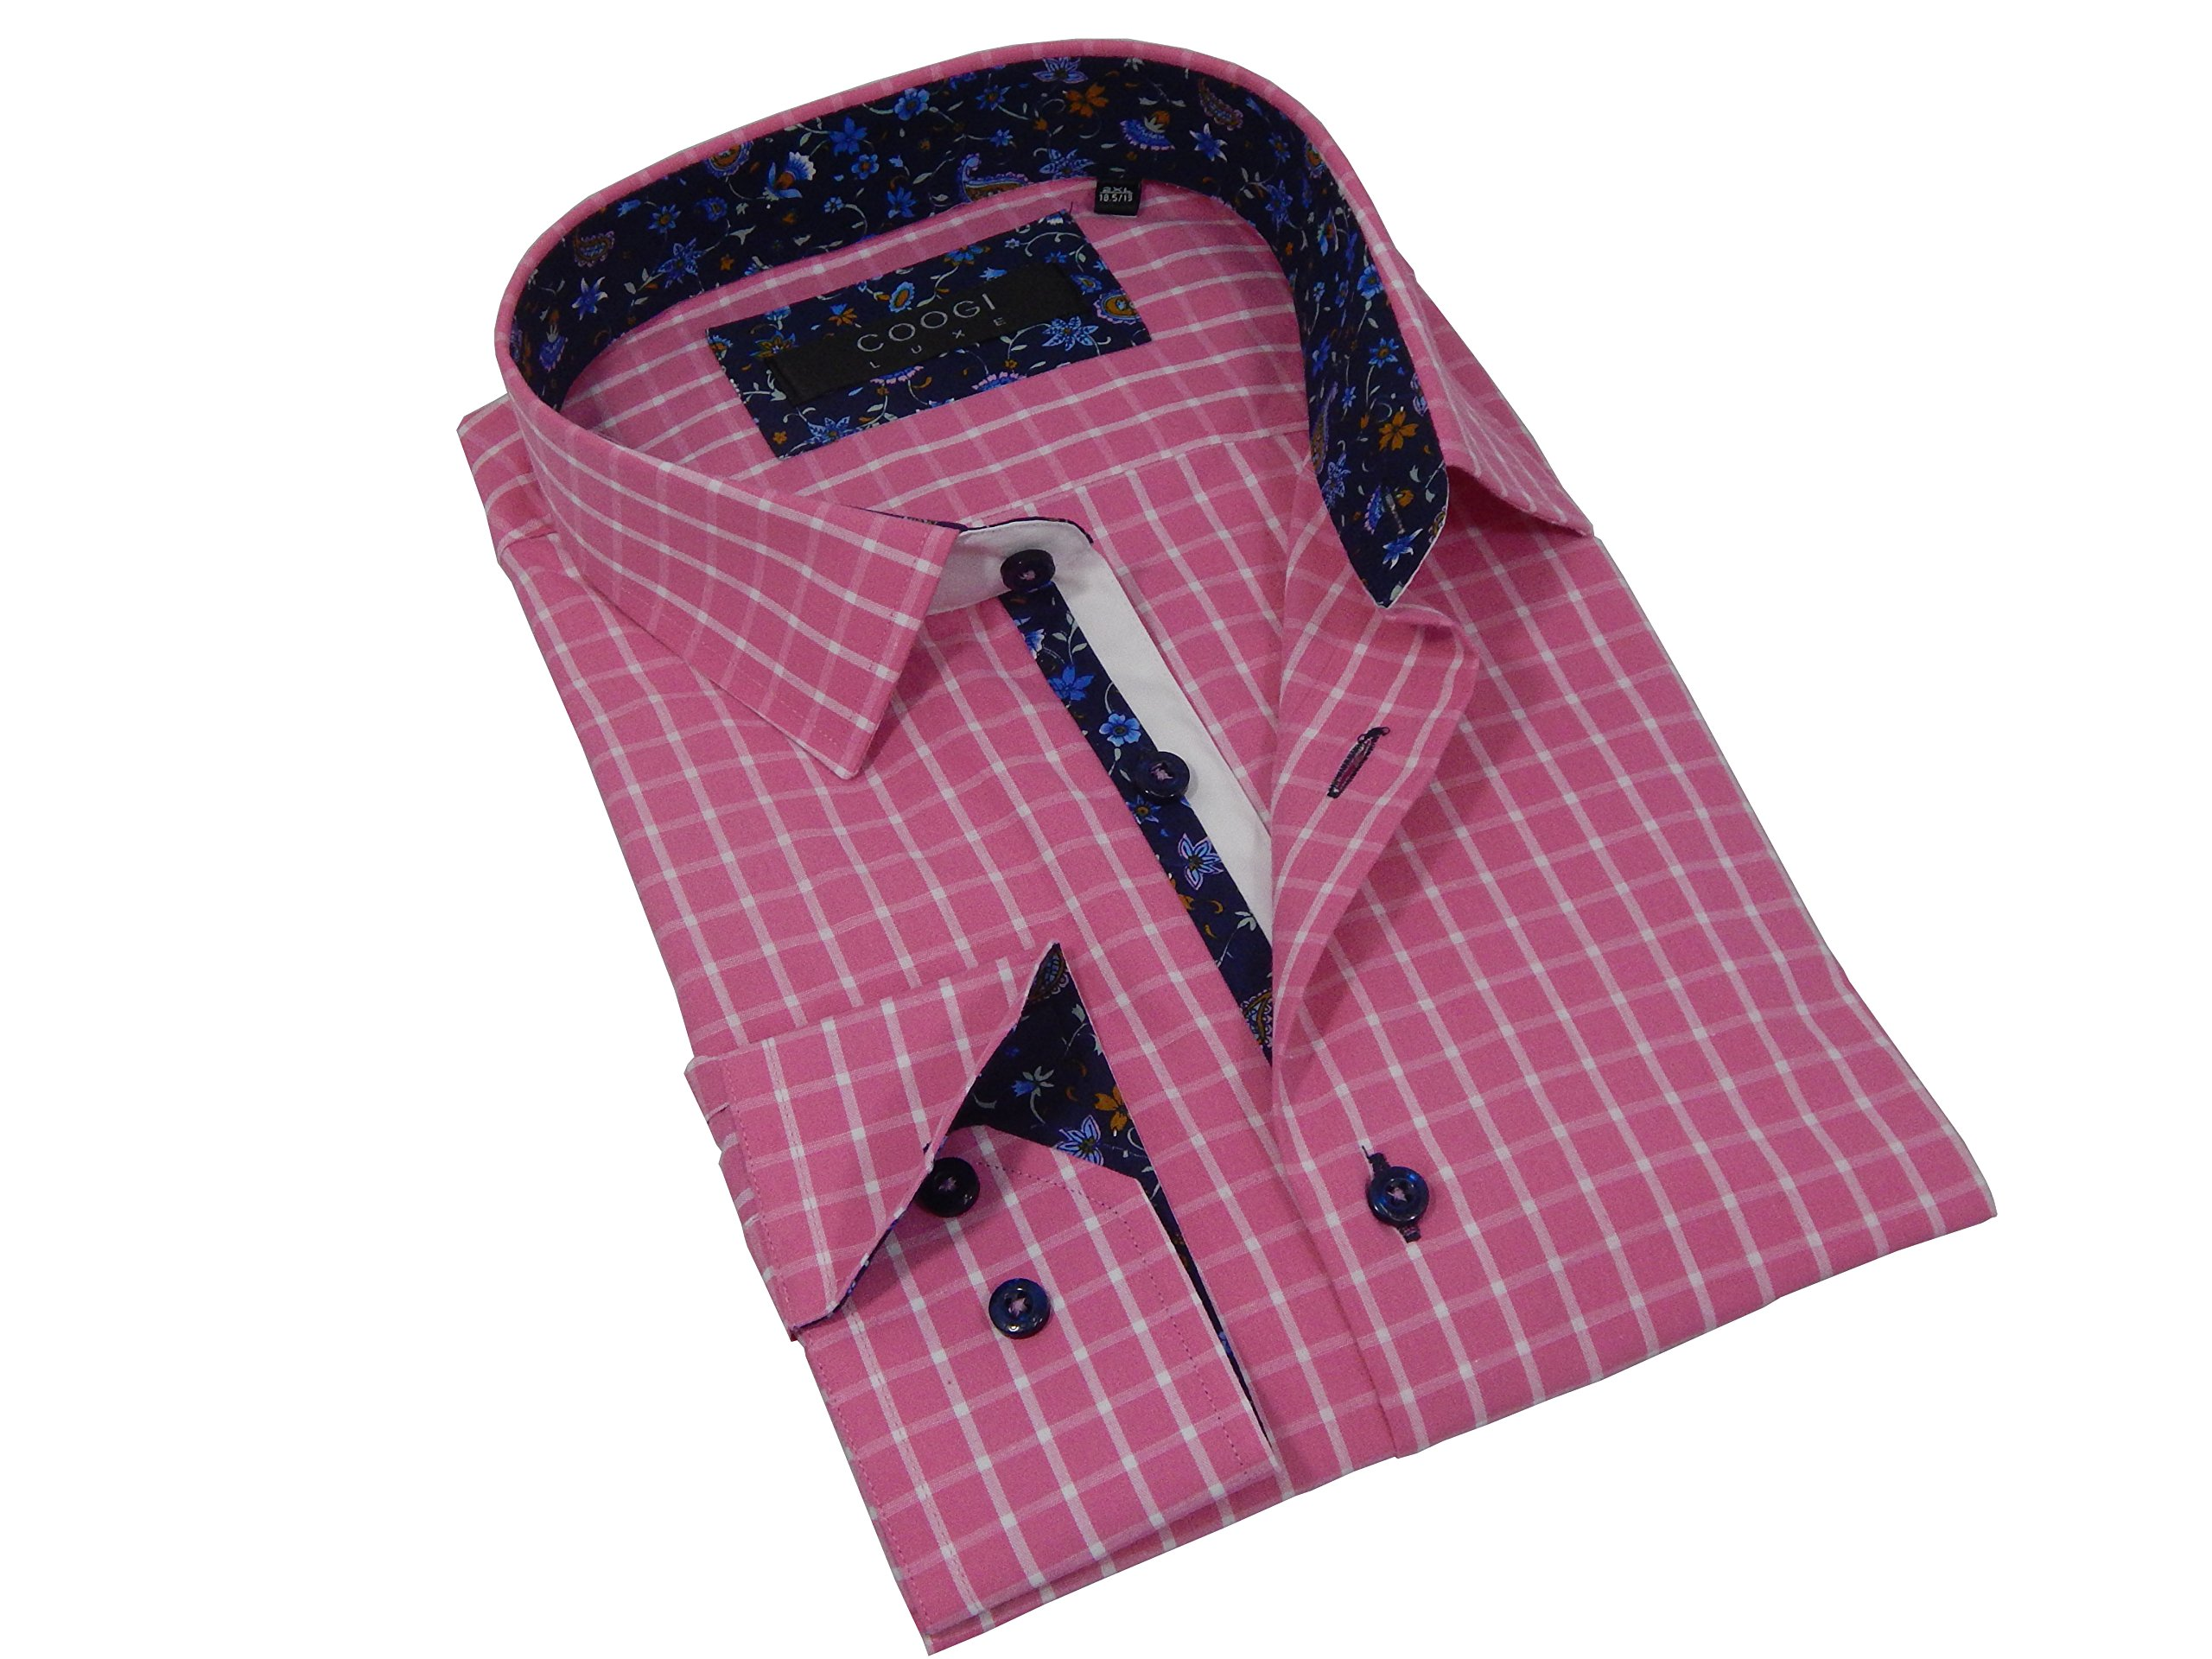 Coogi Luxe Men's Fine Cut Long Sleeve Tailored Fit Button Down Checkered Dress Shirt